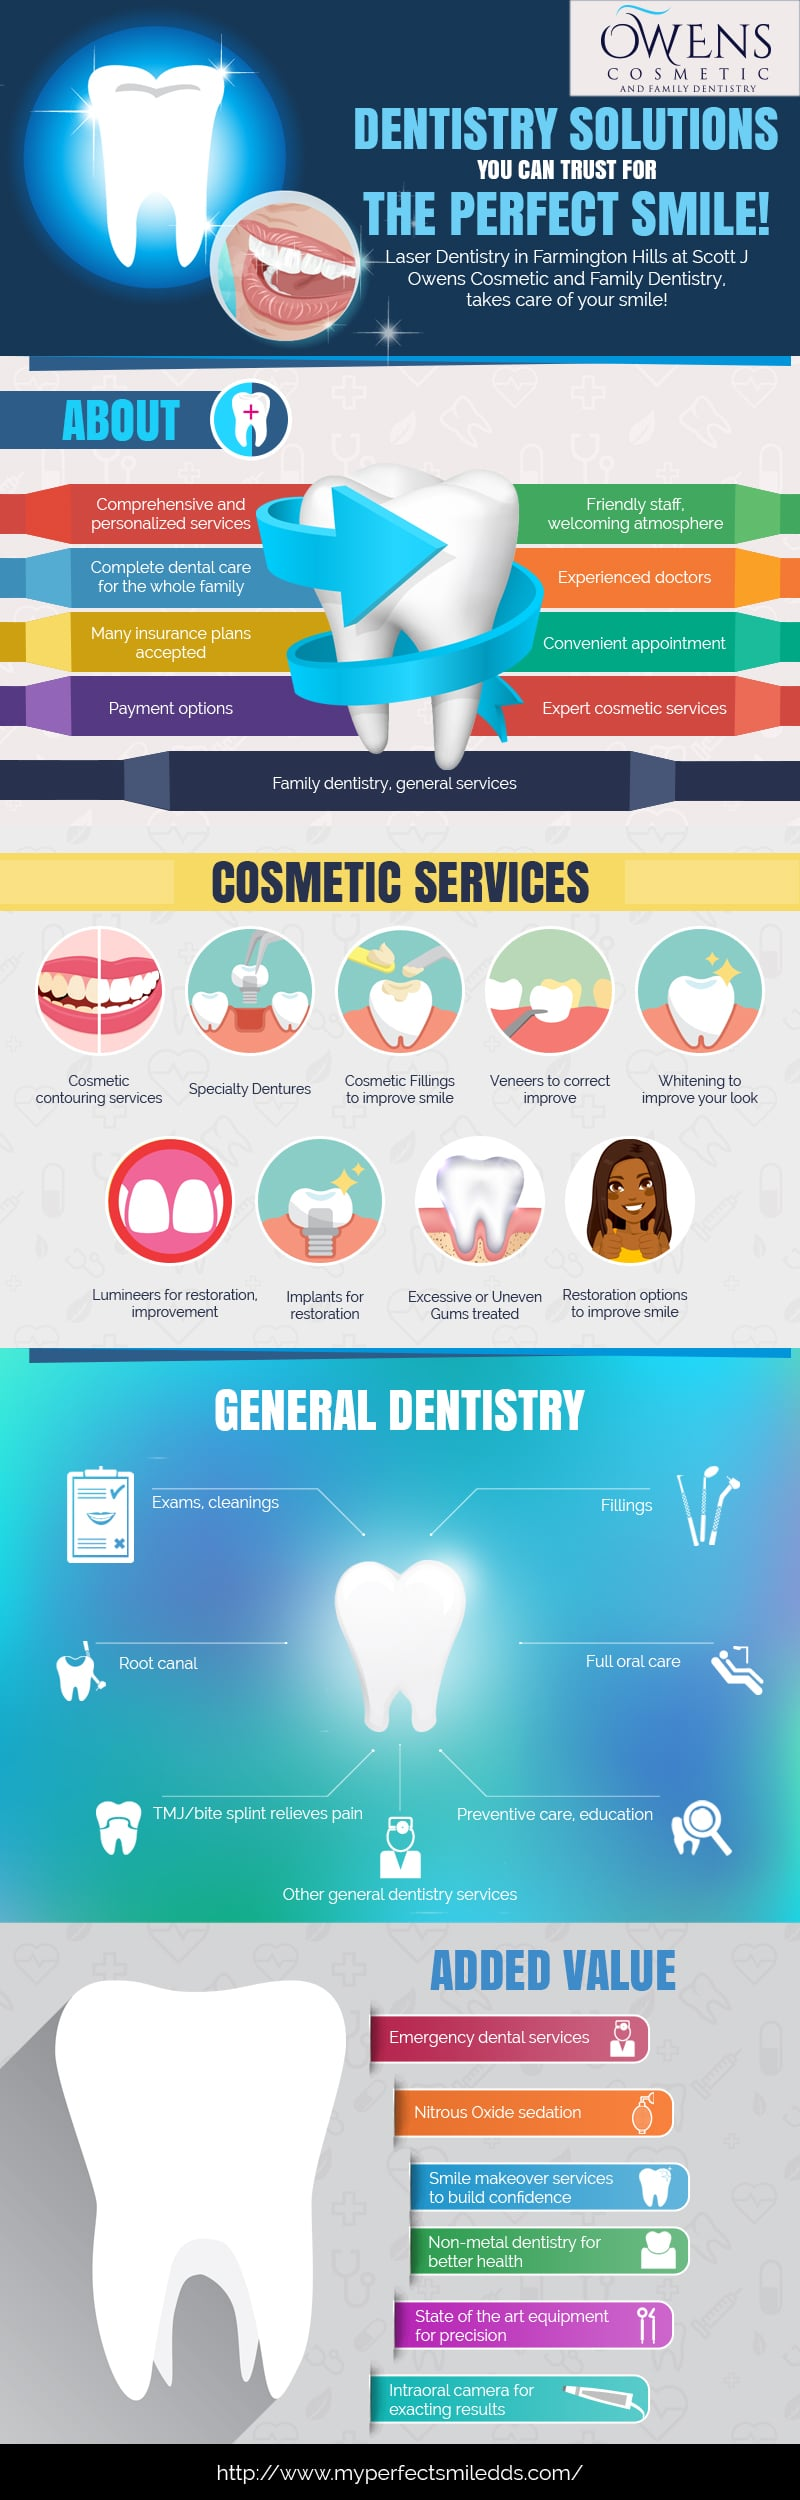 Dentistry Solutions